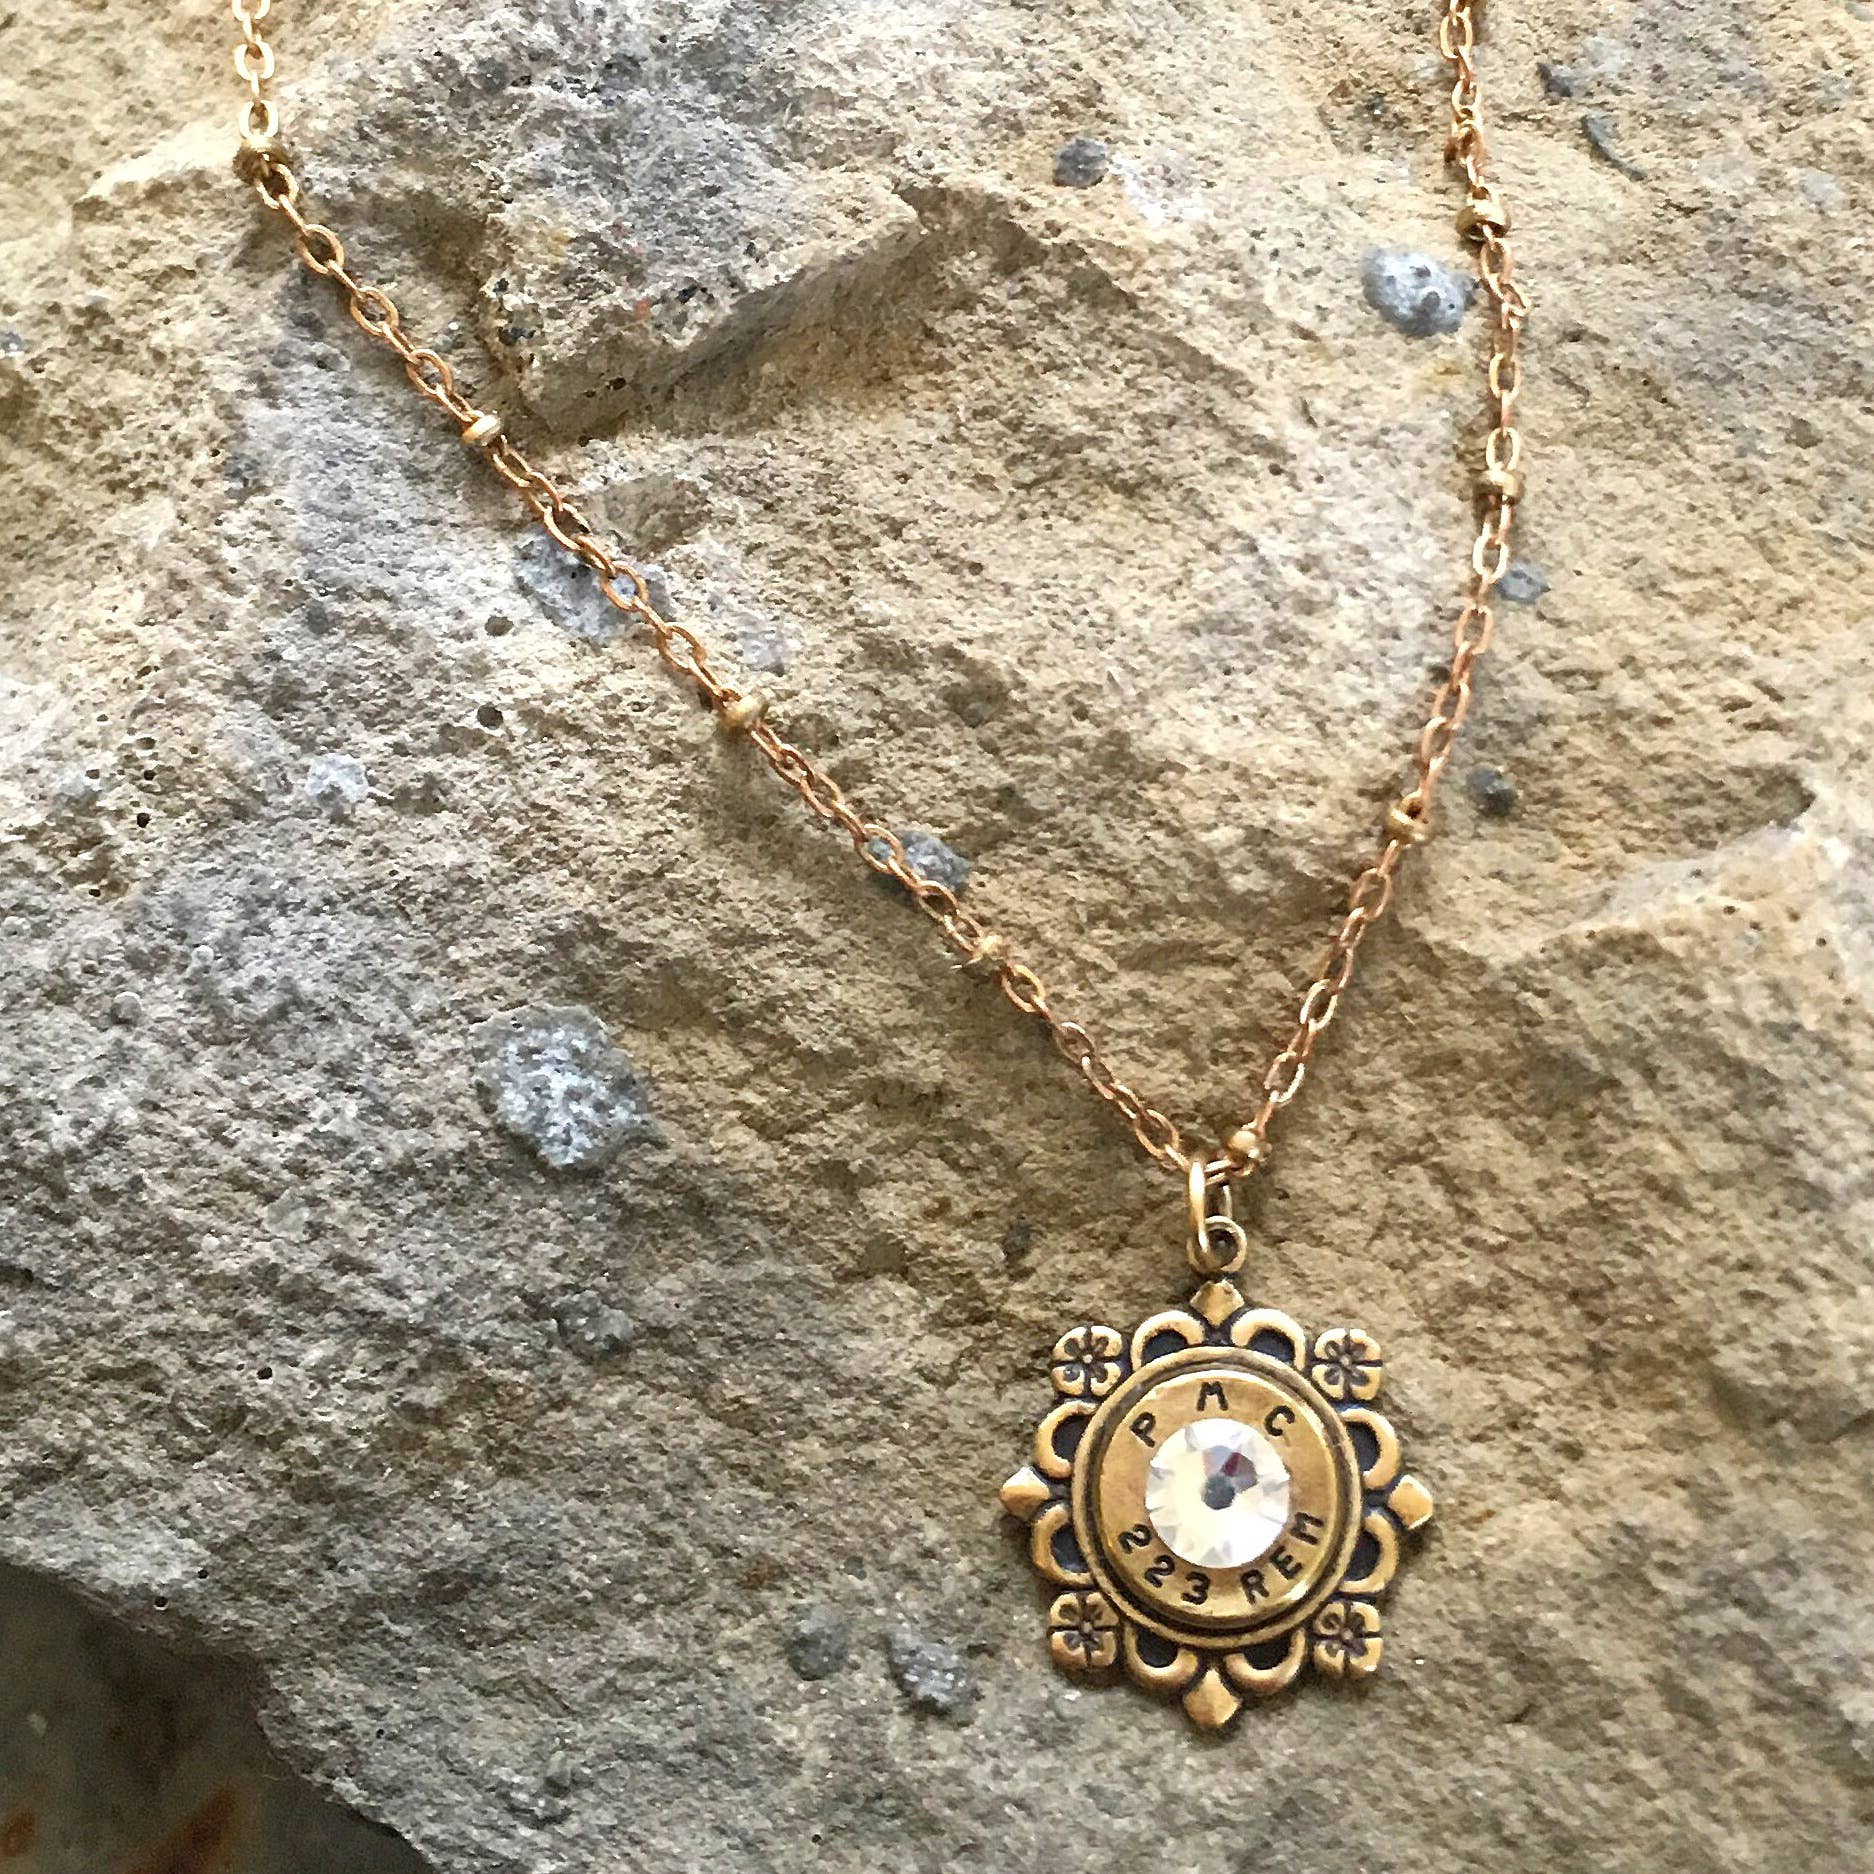 Buffalo Girls Salvage - Bullet Flower Necklace - Antique Bronze Recycled Jewelry